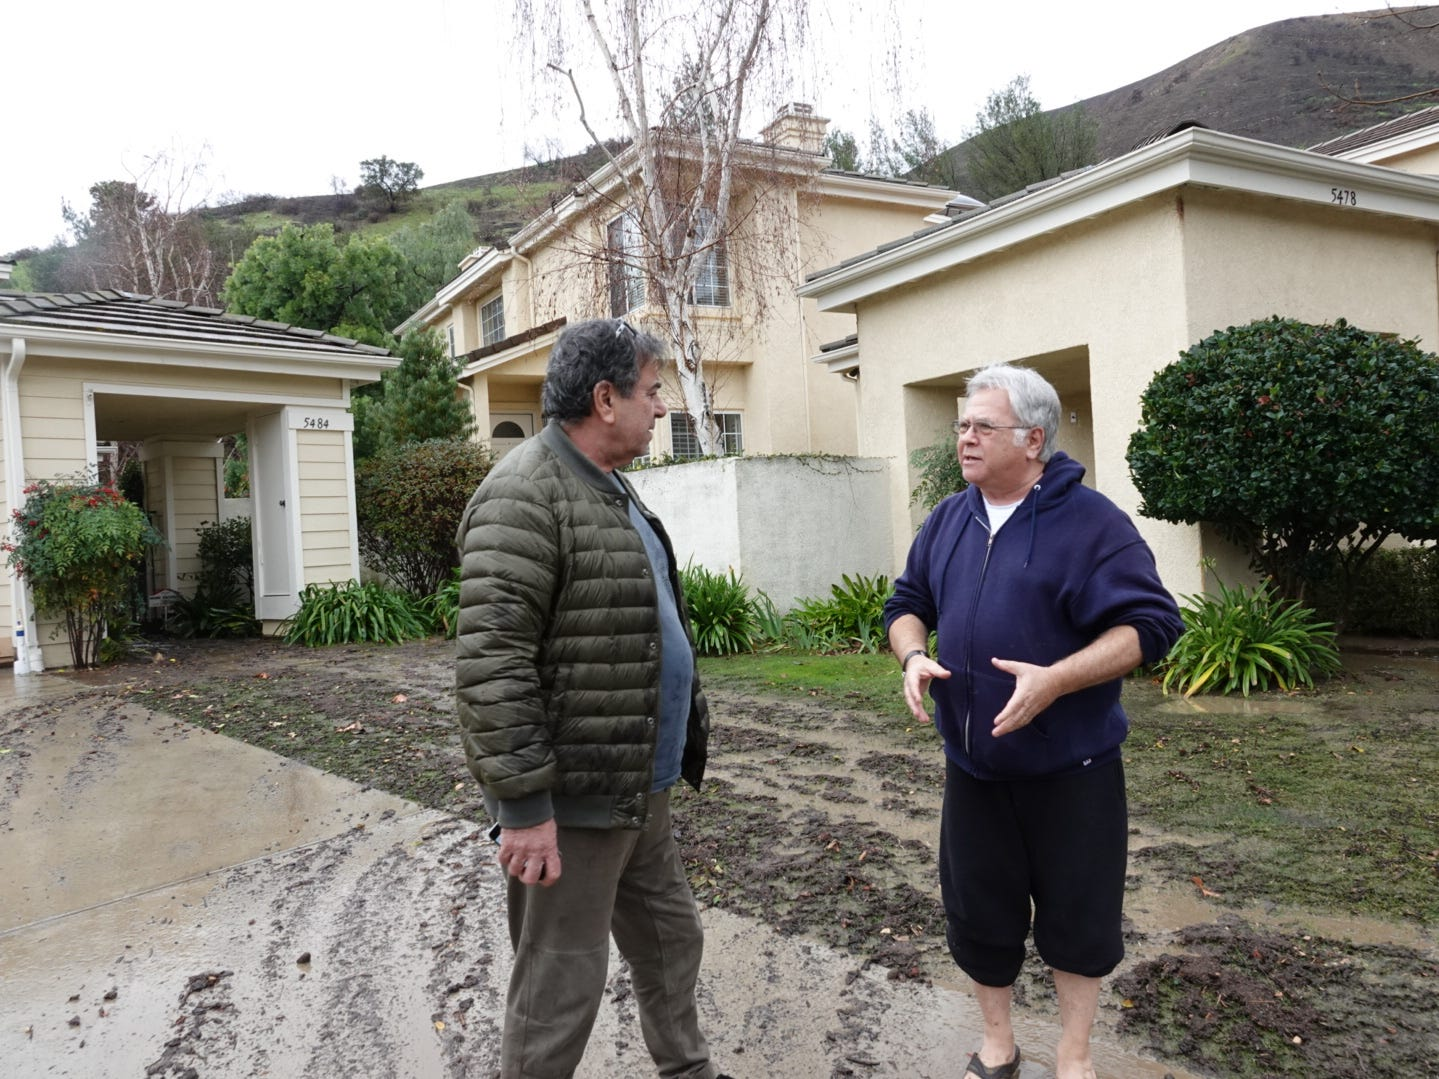 Neighbors Panos Sklavenitis, left, and Jerry Lax discuss mud impacting their homes on Saturday after a major storm moved through the Ventura County region.